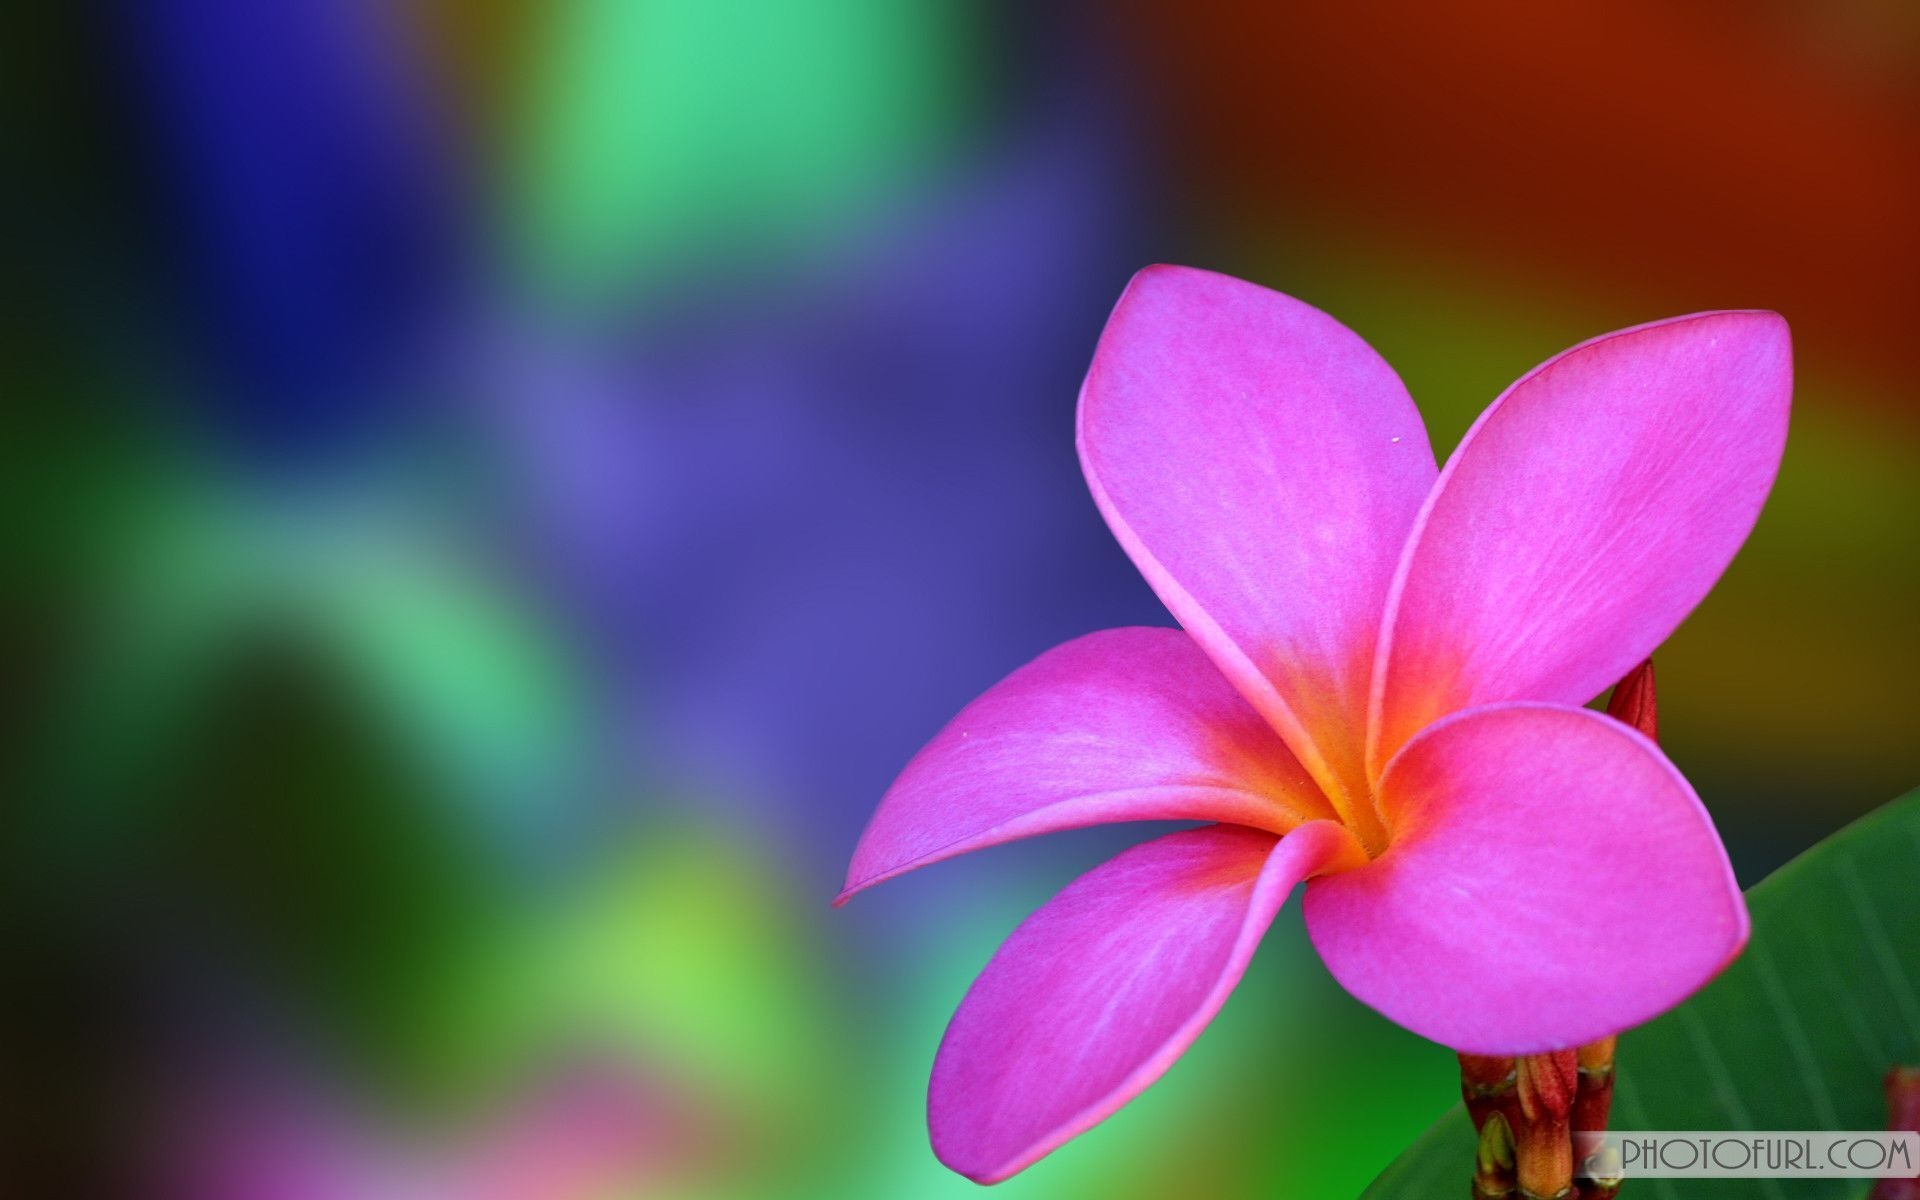 Flower Wallpapers For Computer Wallpaper Desktop On Full Hd